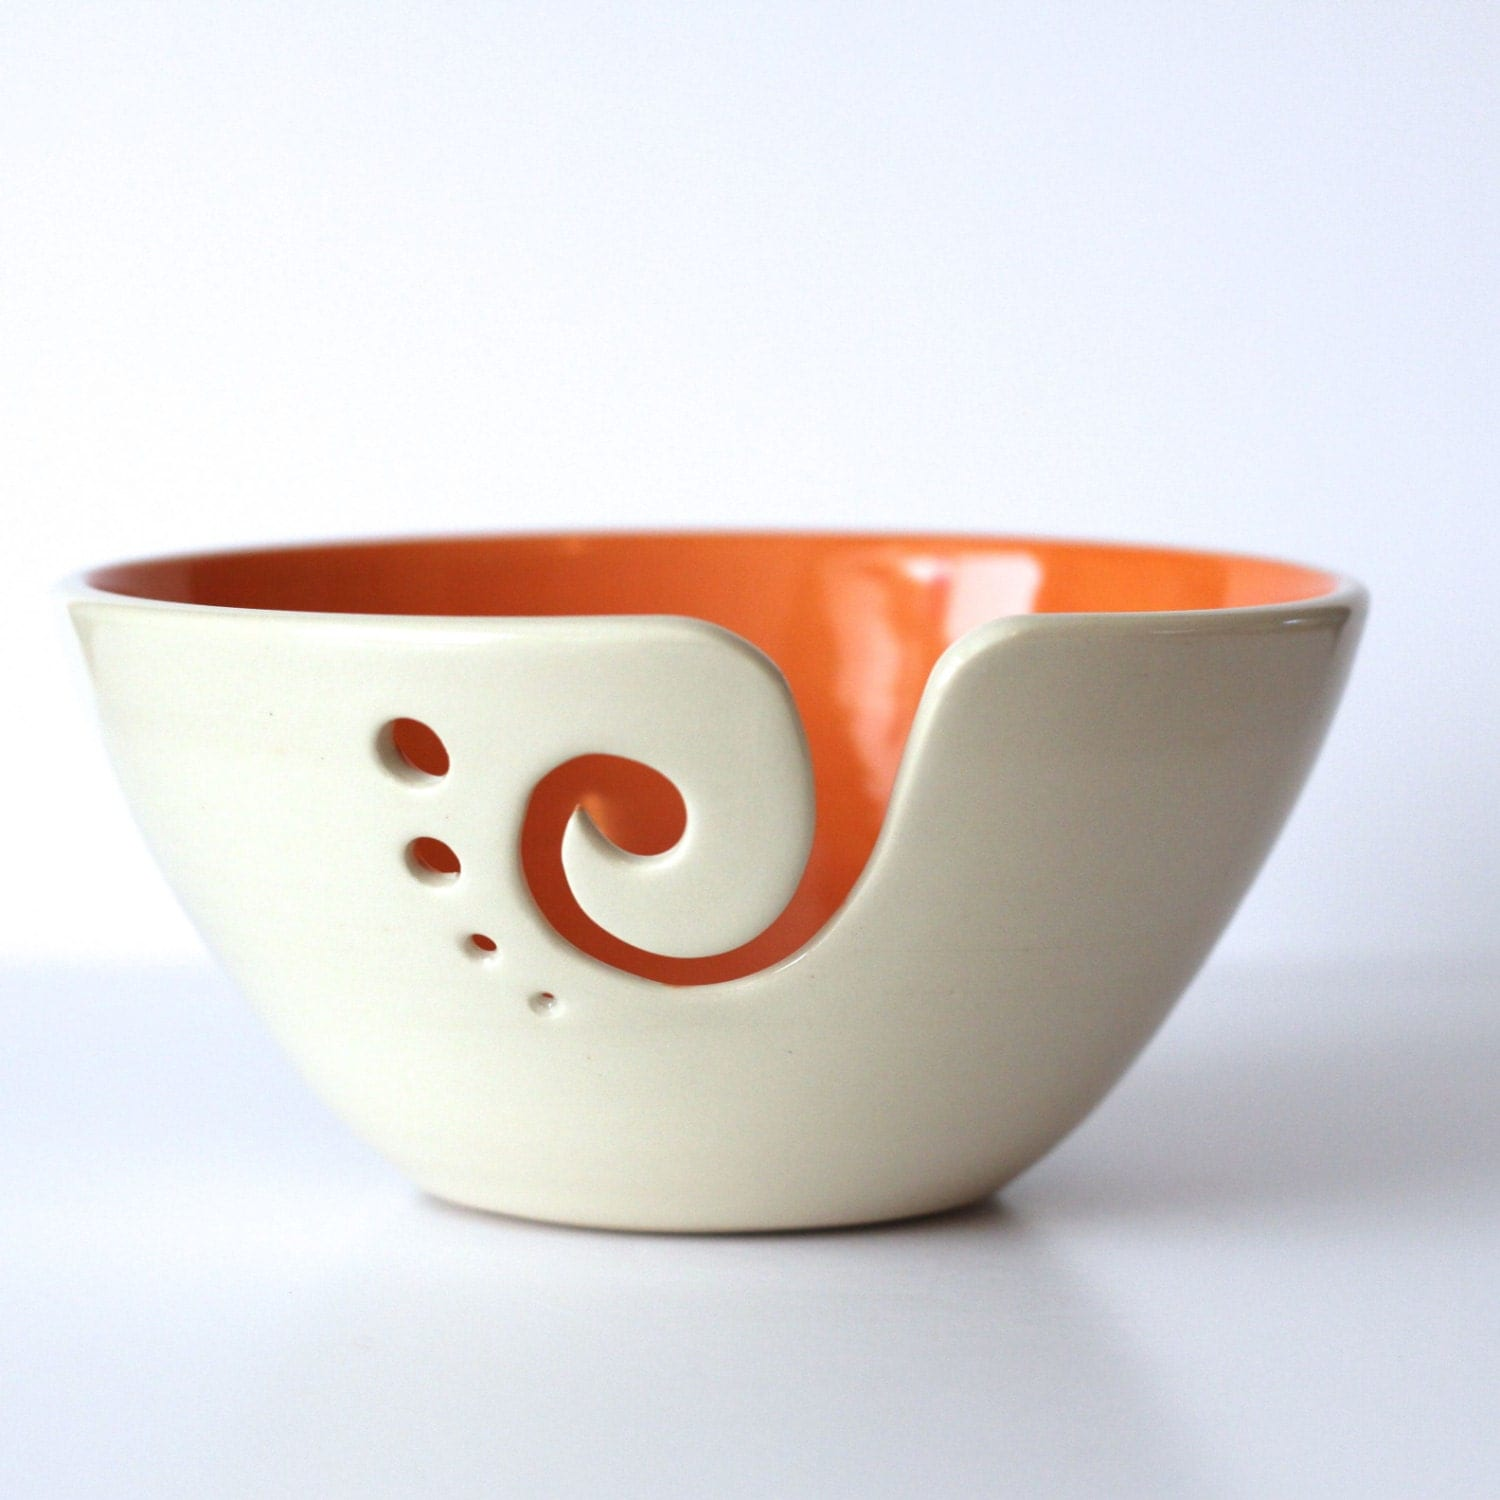 Crochet Yarn Bowl : Orange Yarn Bowl / Knitting Bowl / Crochet Bowl by andersenpottery